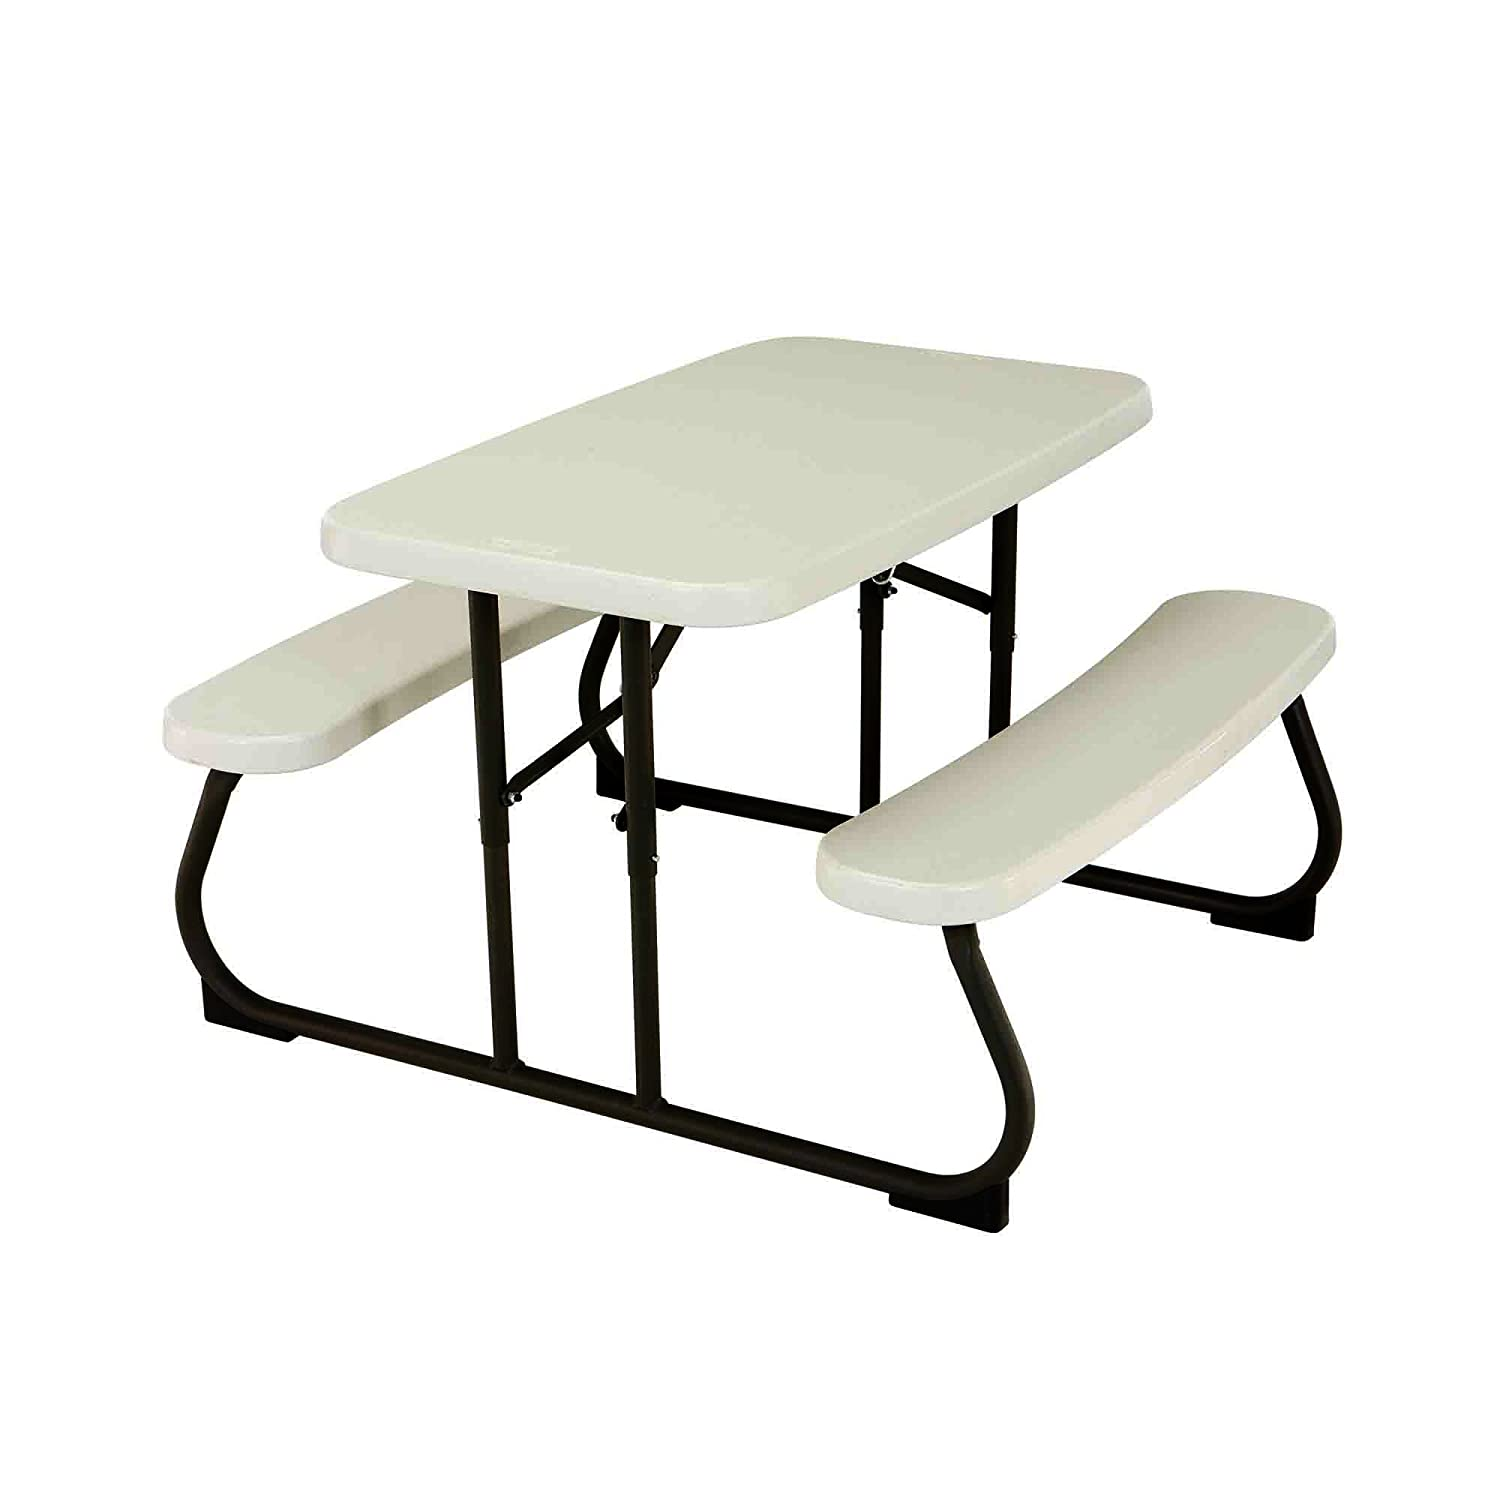 Amazon.com : Lifetime 280094 Kidu0027s Picnic Table : Lifetime Children S Picnic  : Garden U0026 Outdoor